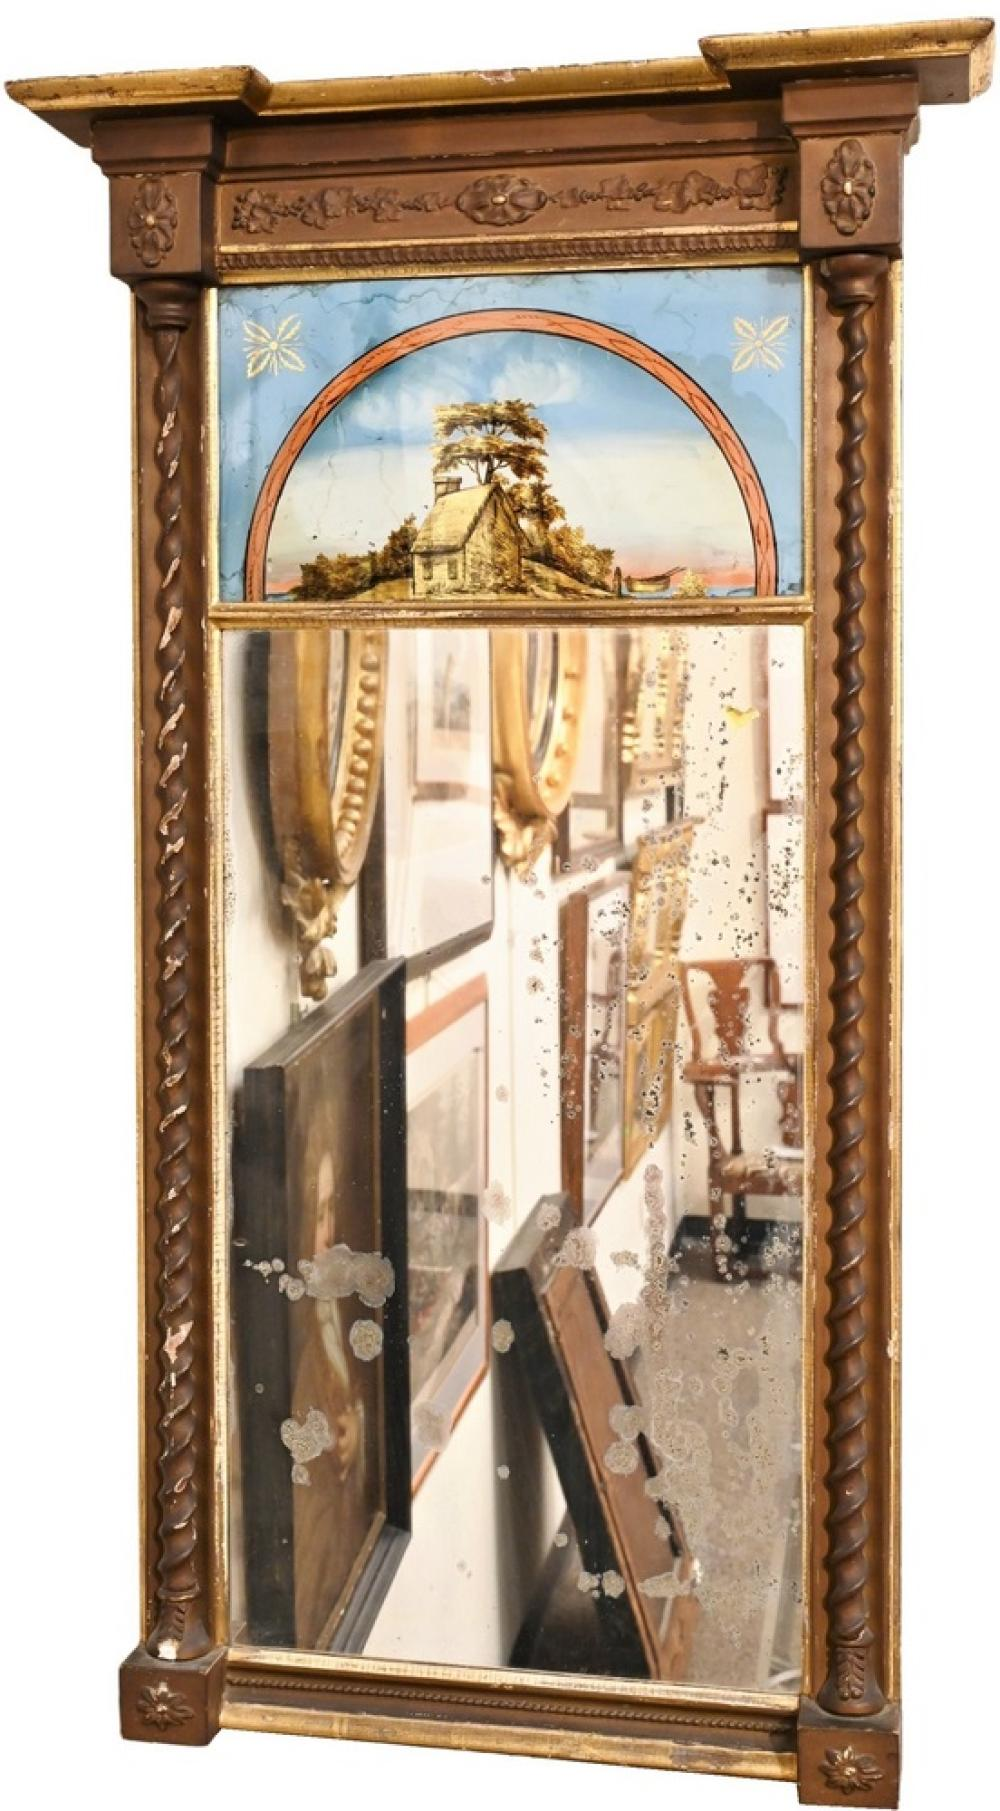 Federal Mirrorhaving eglomised panel over rectangular mirror housed in gilt frame overall 49 1/4 x 27 inches